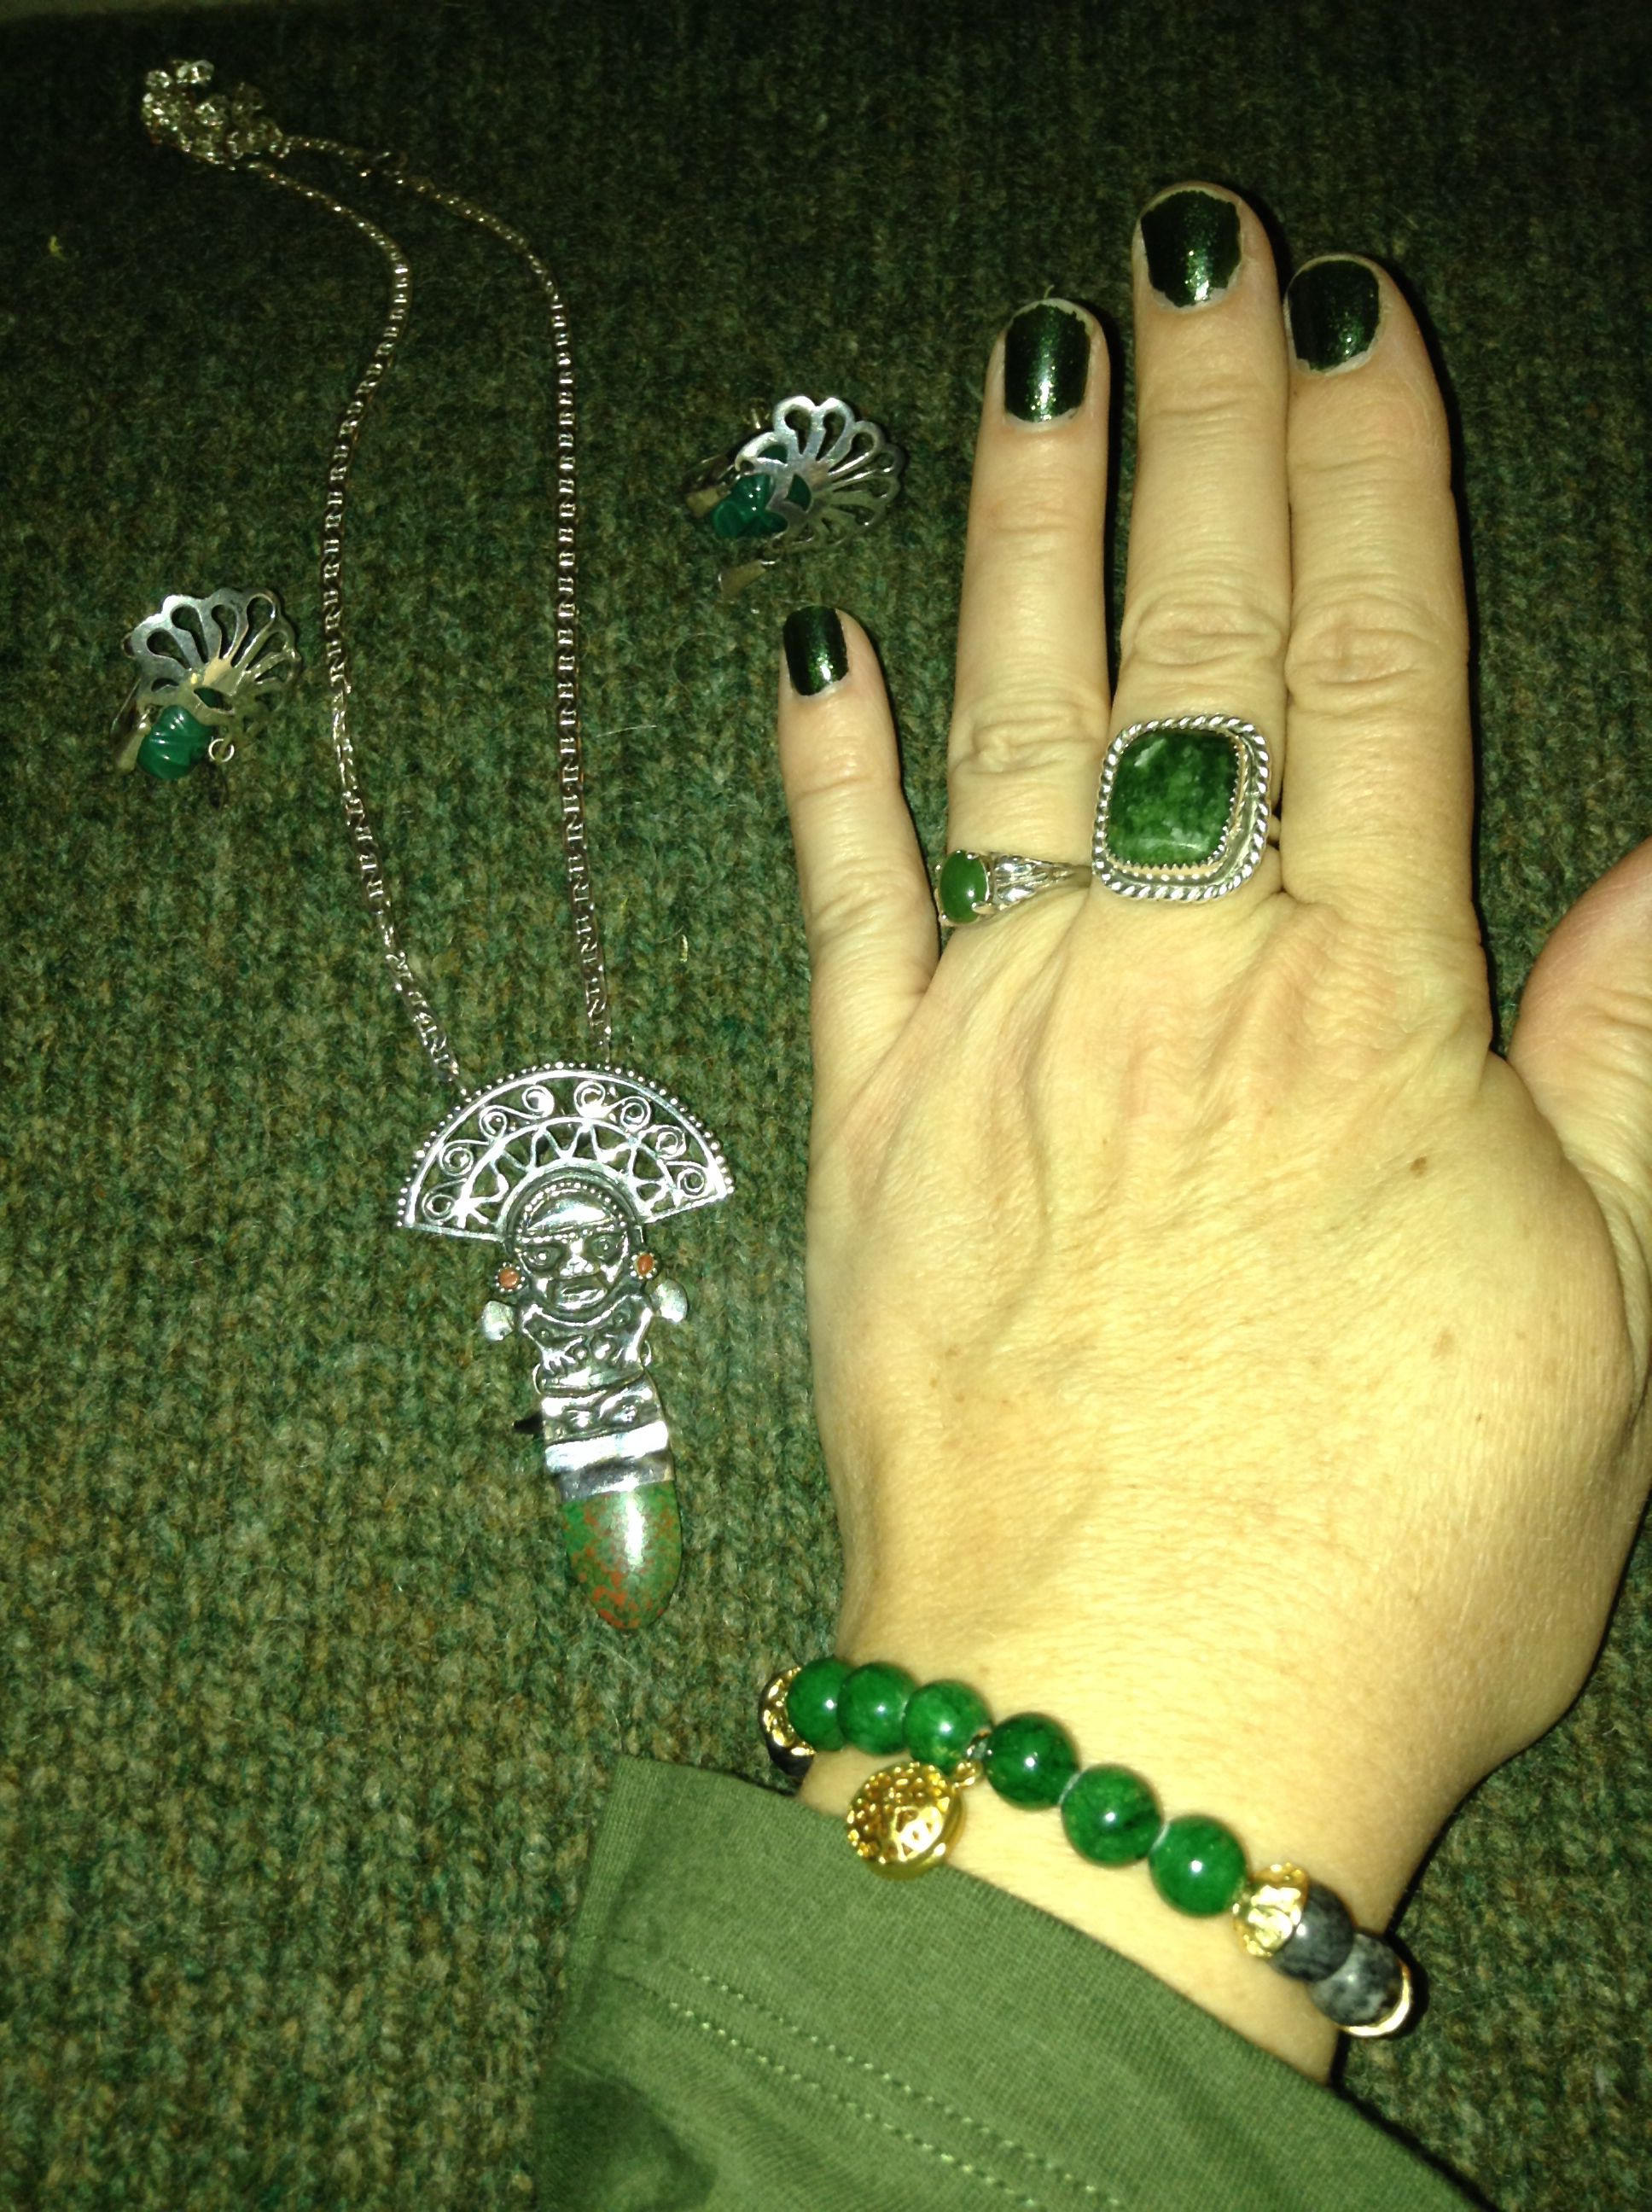 15+ Jewelry stores in rock springs wyoming ideas